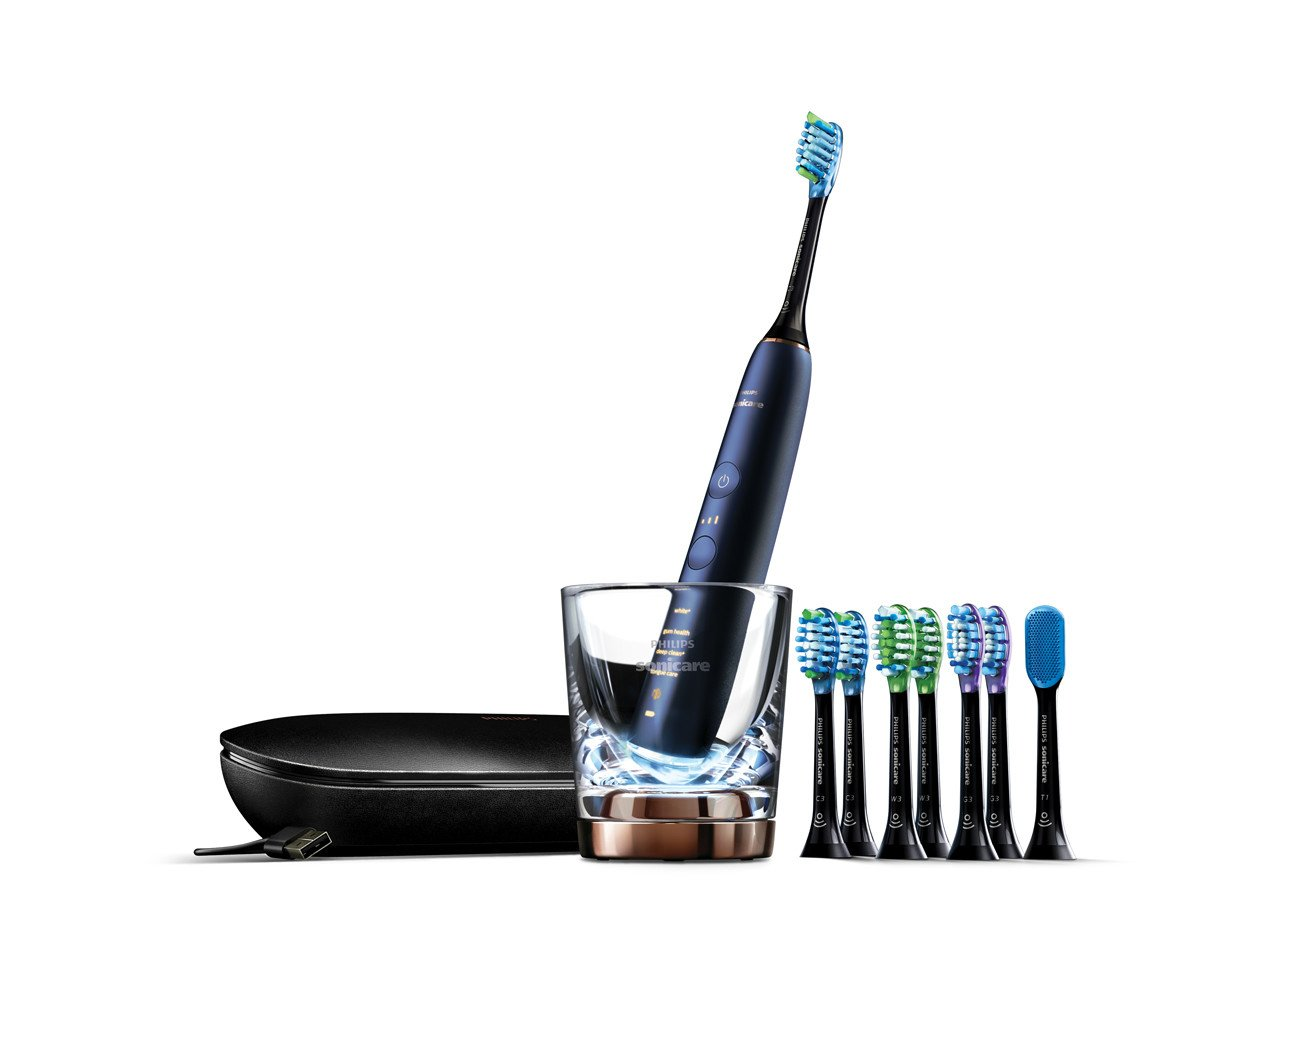 Philips Sonicare DiamondClean Smart Electric, Rechargeable toothbrush for Complete Oral Care, with Charging Travel Case, 5 modes, and 8 Brush Heads  – 9700 Series, Lunar Blue, HX9957/51